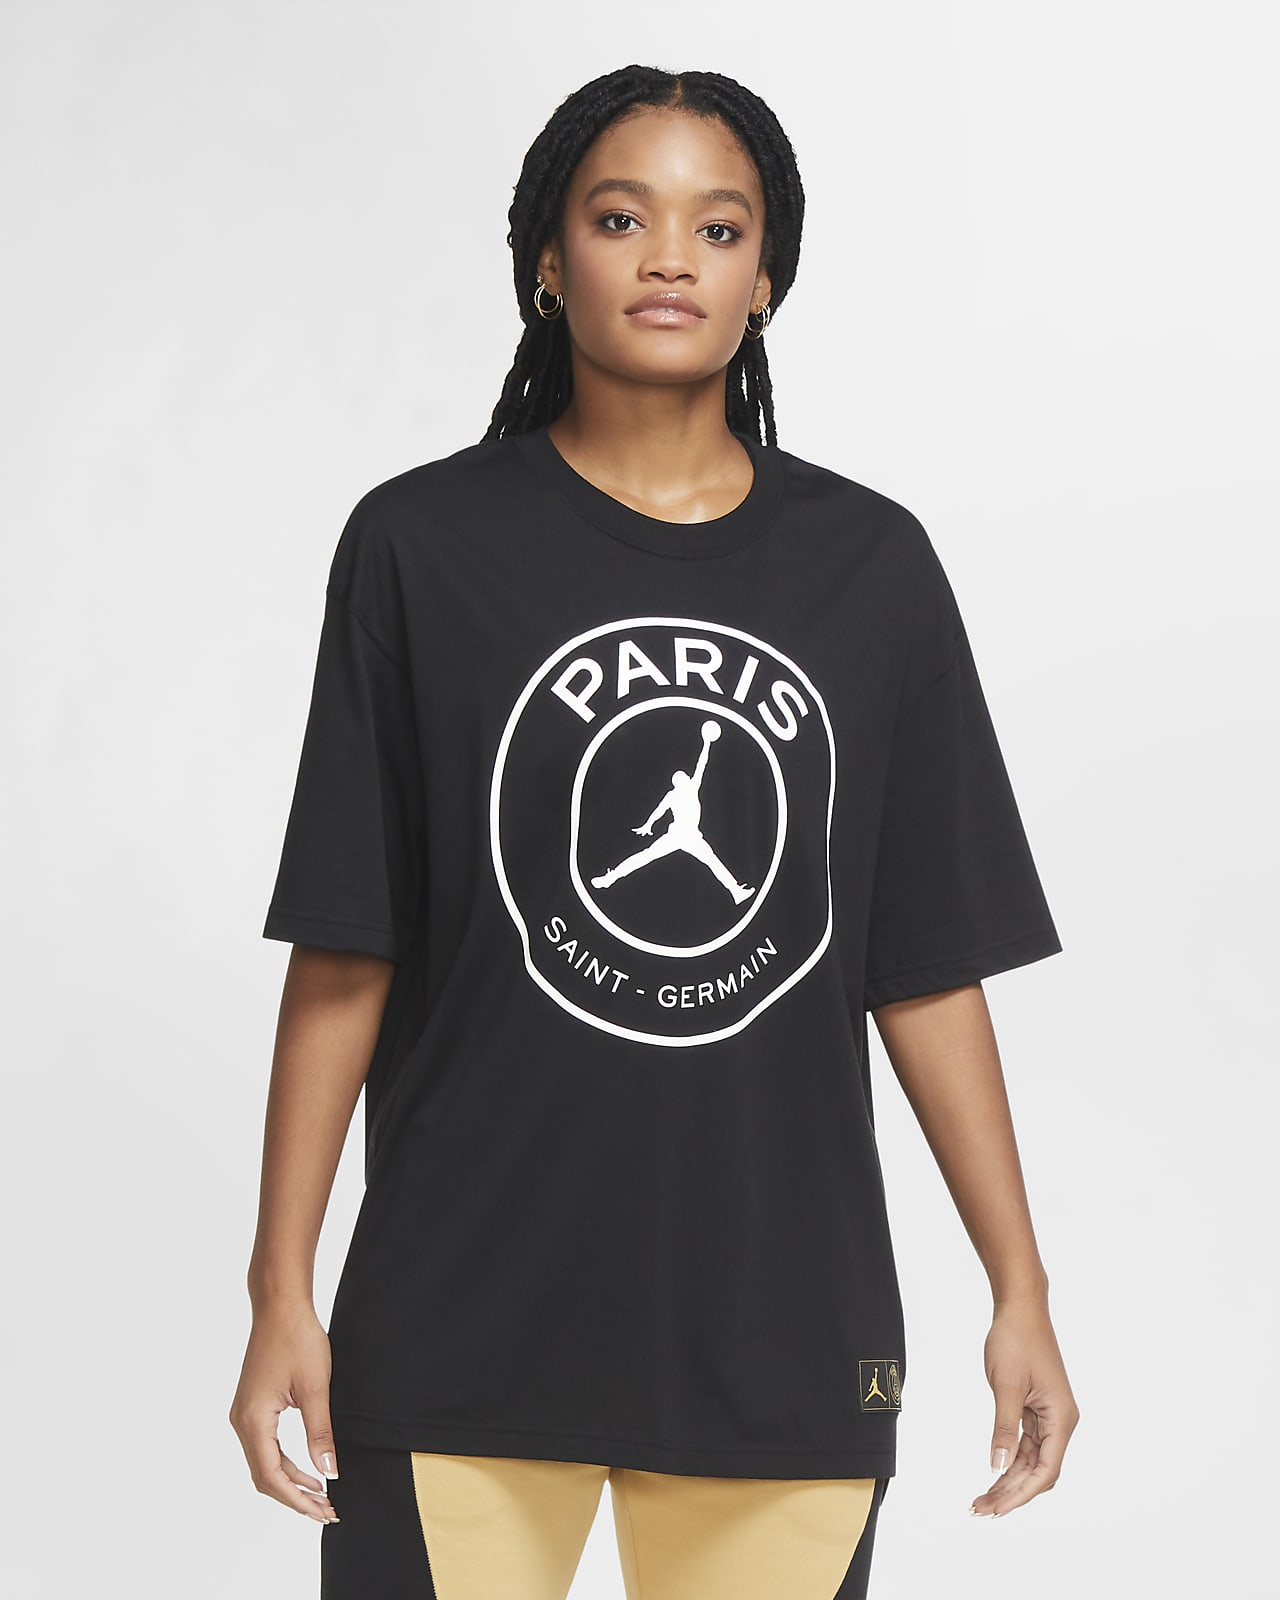 Paris Saint-Germain Women's Oversize T-Shirt